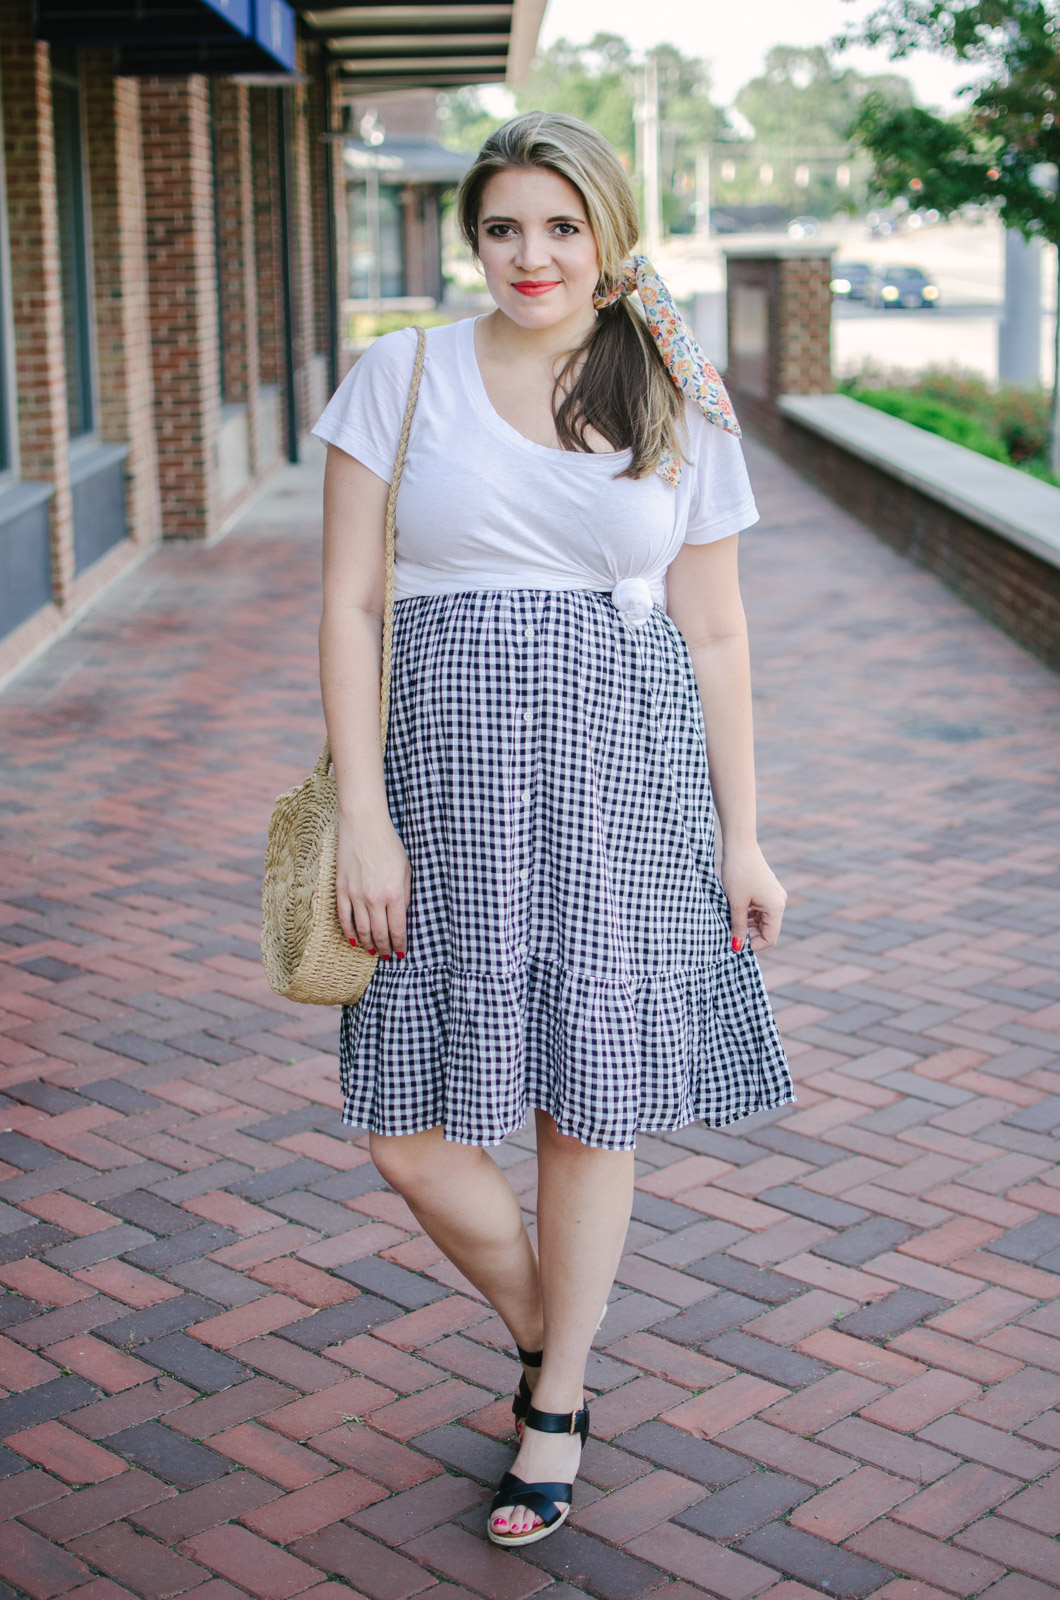 midi skirt pregnancy style - how to wear a midi skirt pregnant! | bylaurenm.com